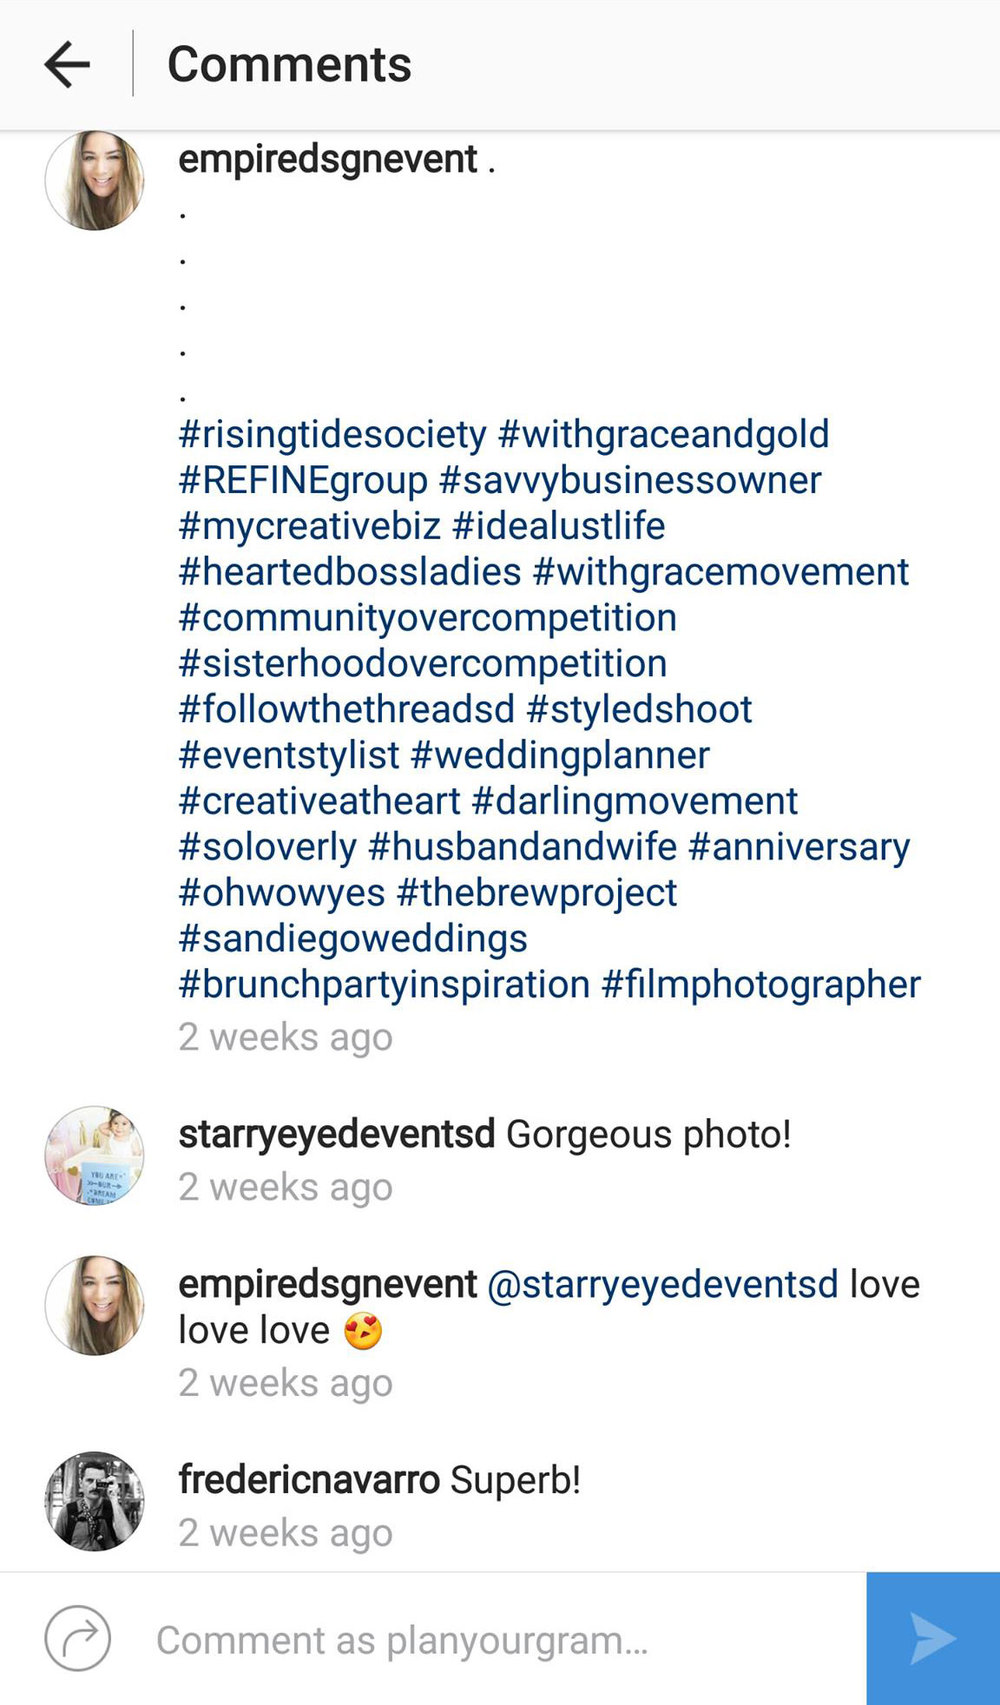 hashtags in first comment